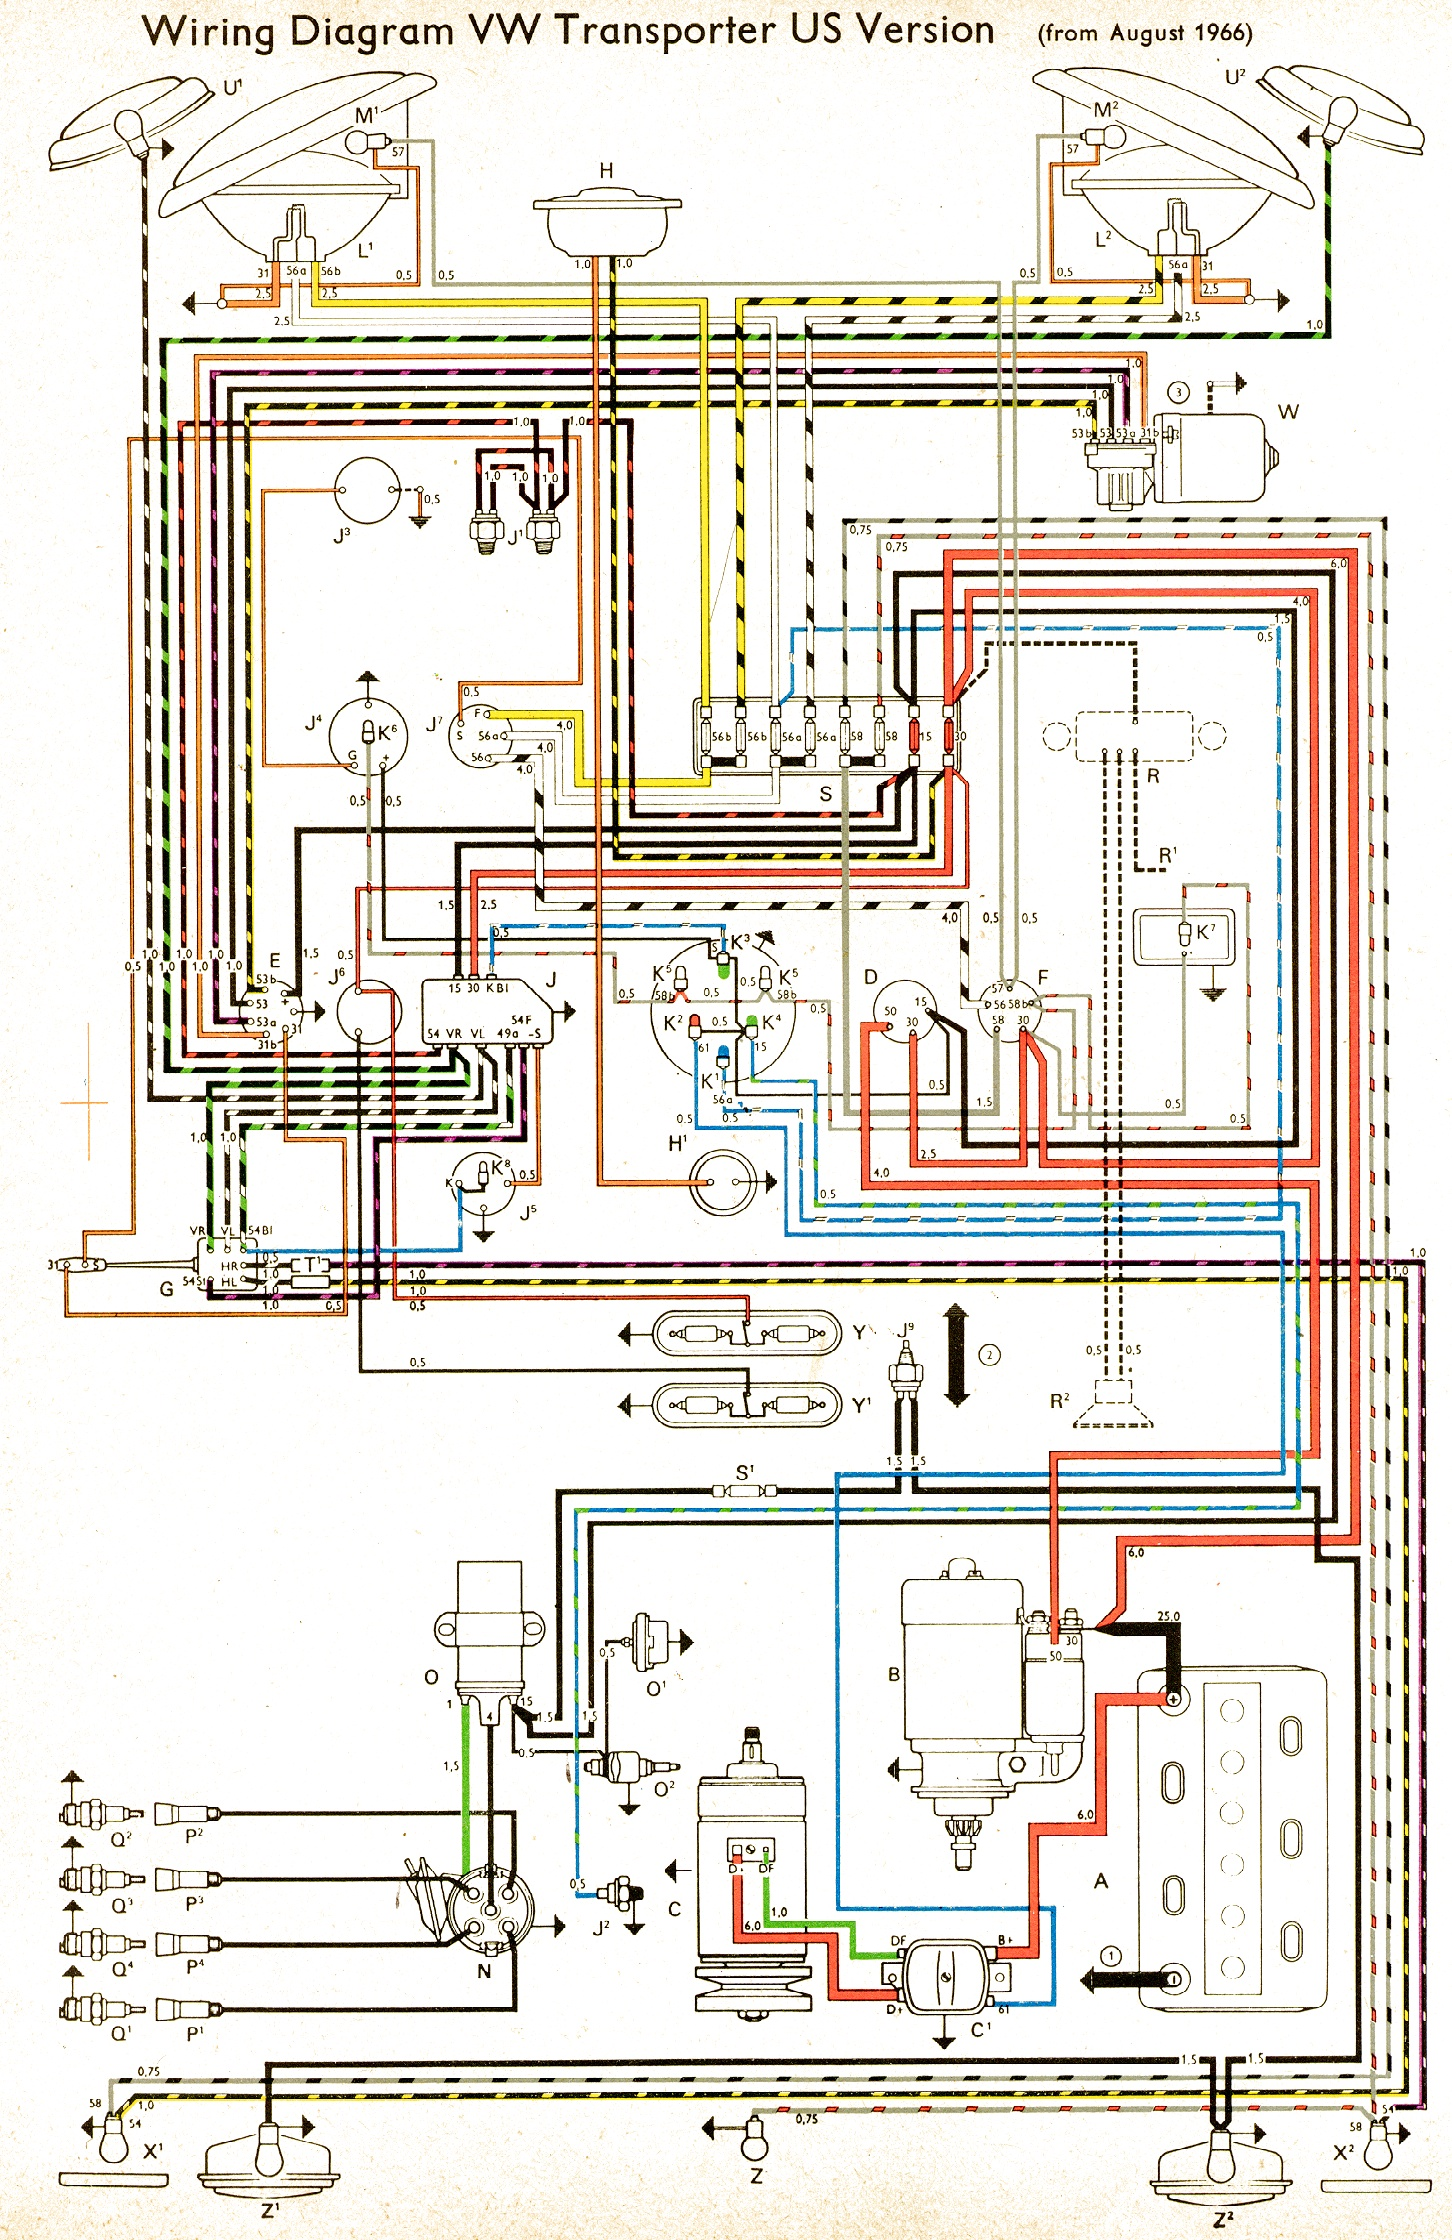 hight resolution of 77 vw van wiring diagram wiring diagram third level 77 gmc wiring diagram 77 vw van